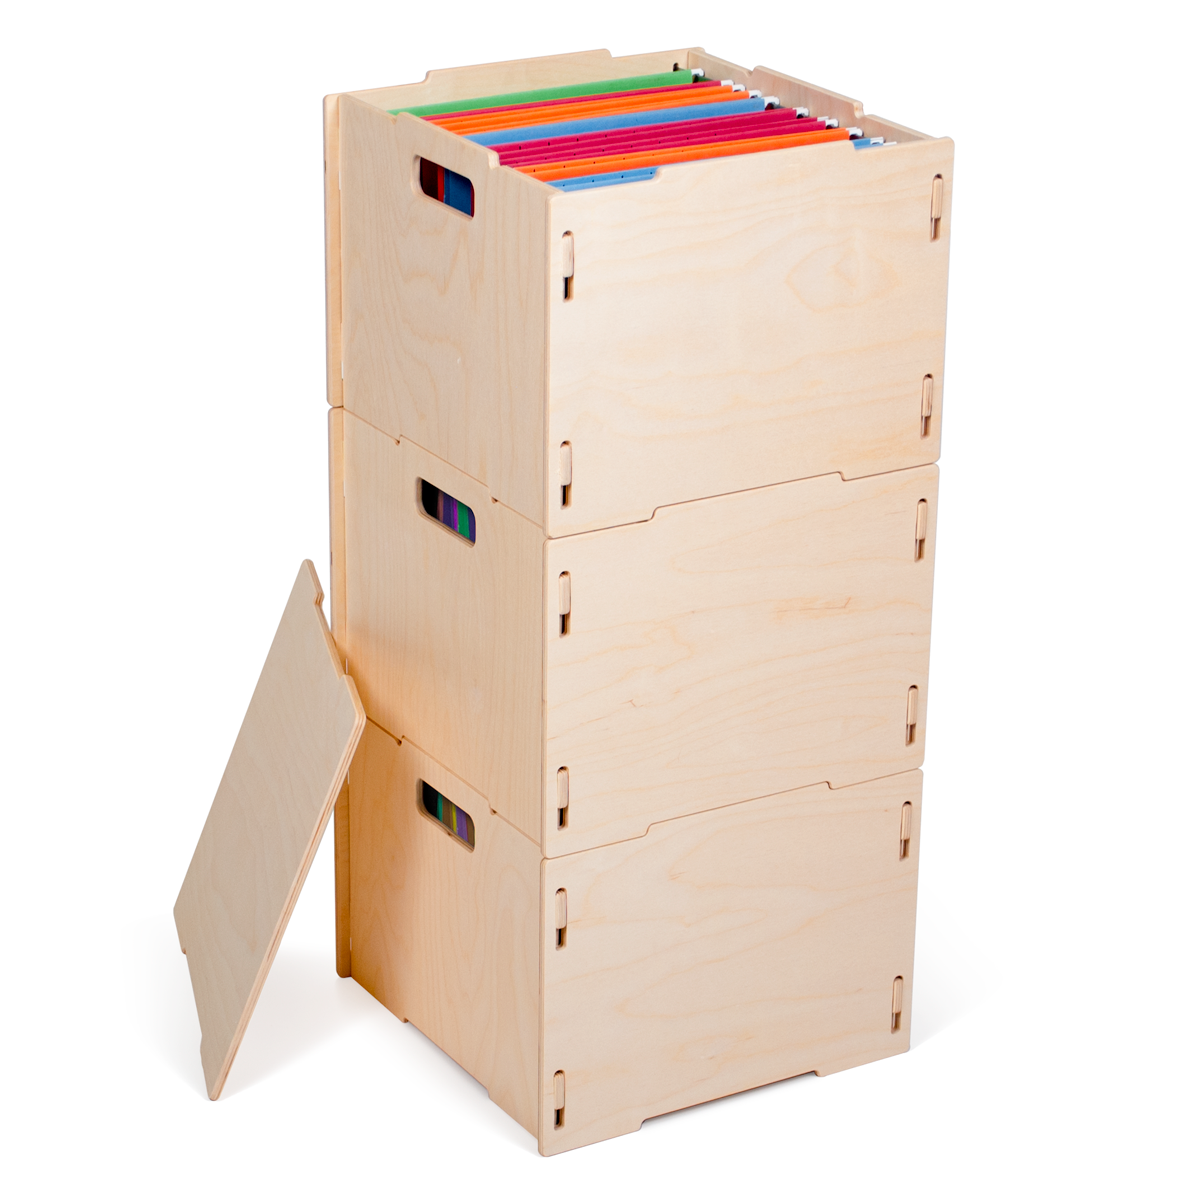 Three Unfinished Modern Wood Hanging File Boxes - By Sprout